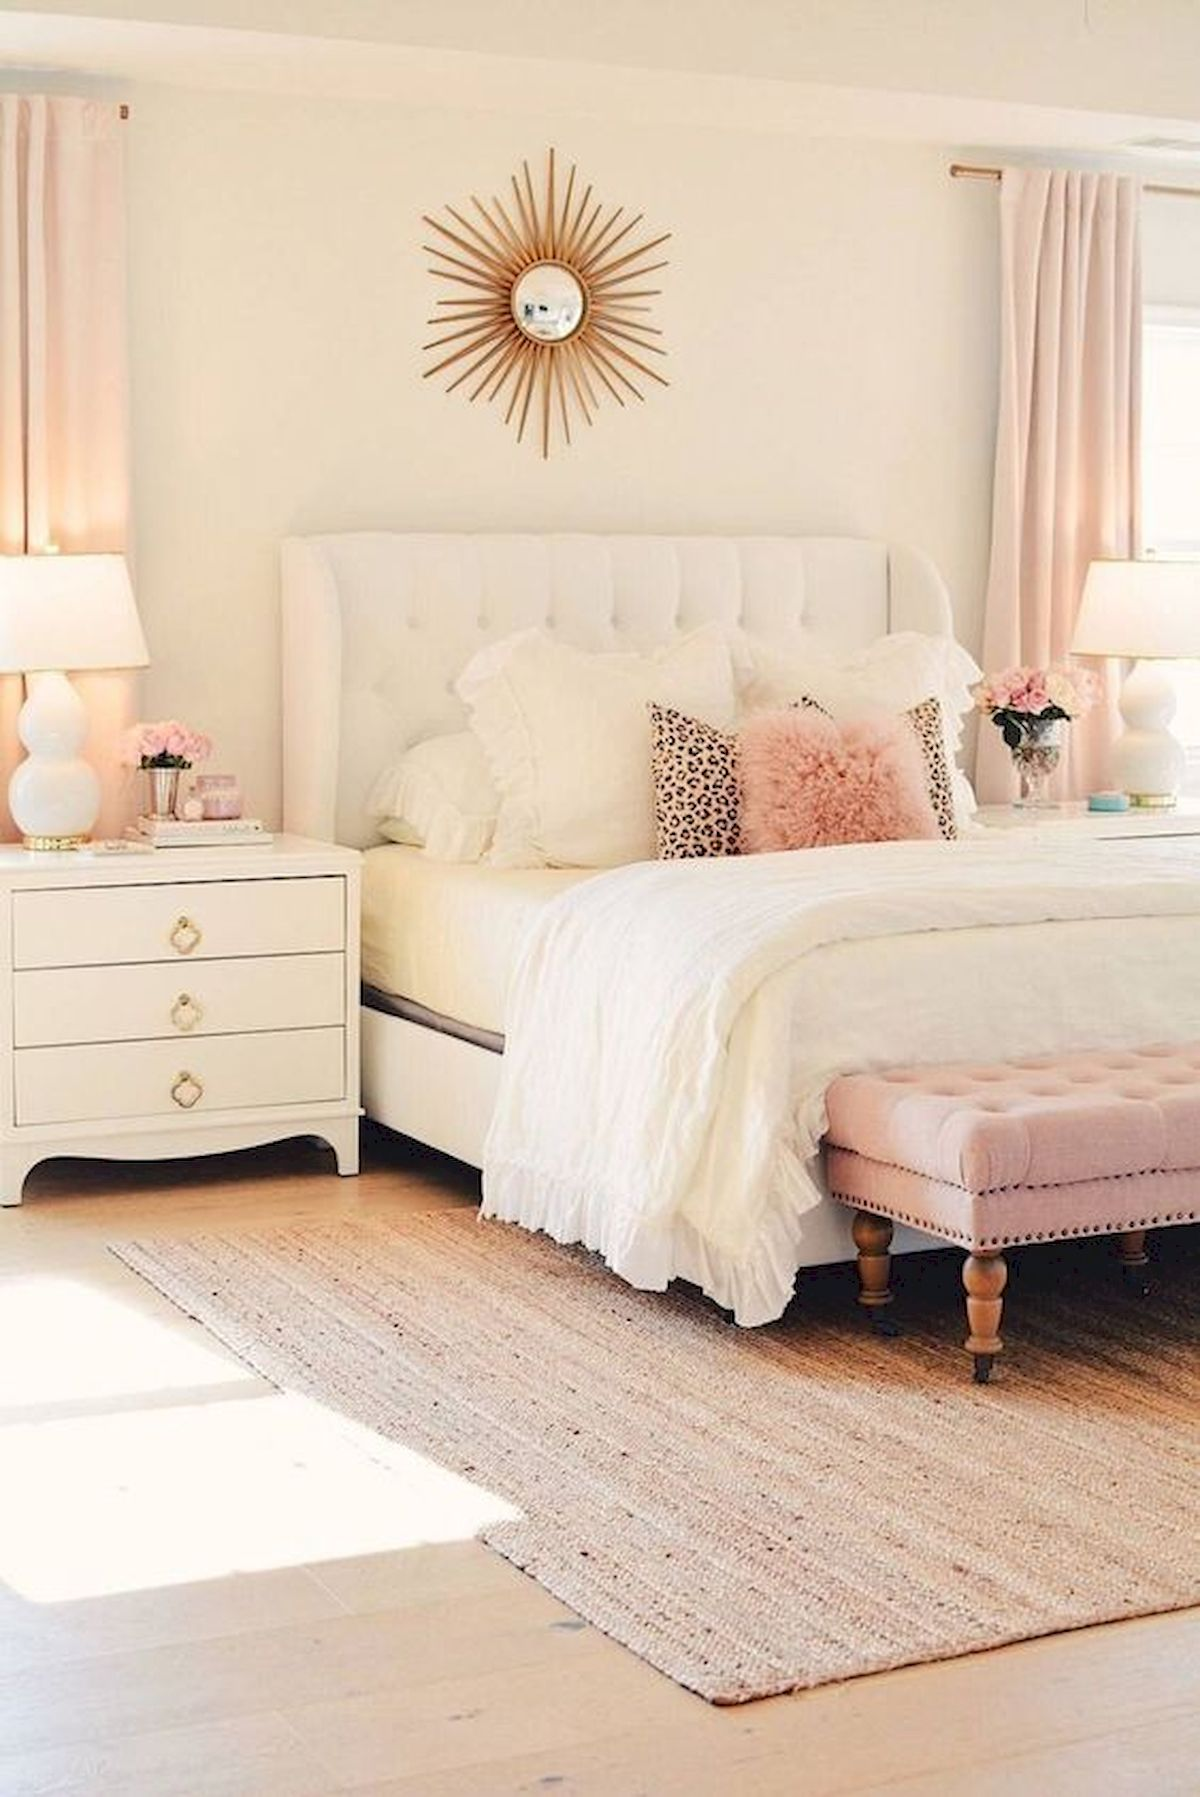 44 Awesome White Master Bedroom Design and Decor Ideas For Any Home Design (7)